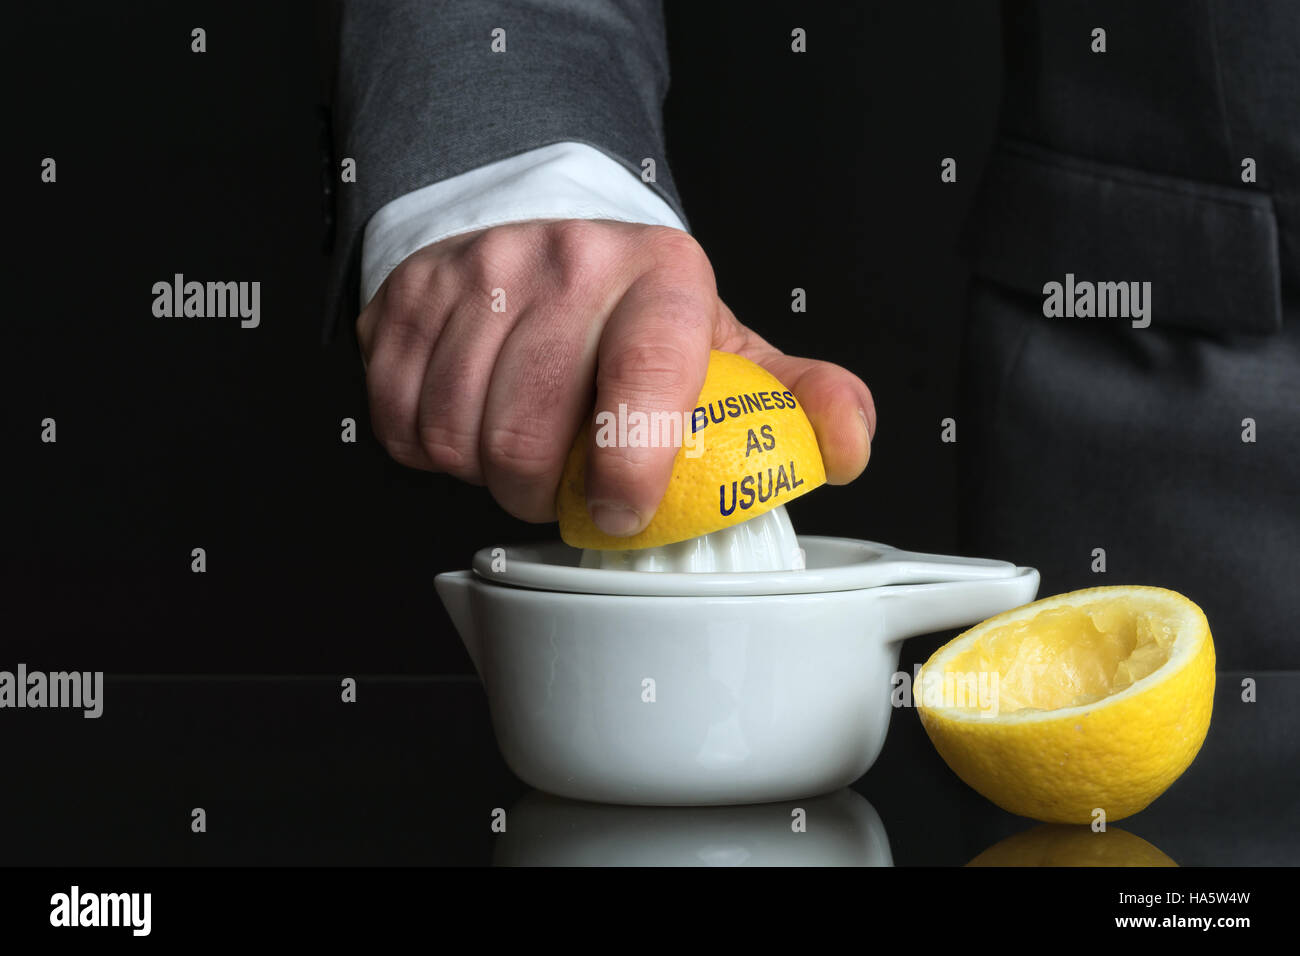 Concept for Business as usual with Lemon and a Man - Stock Image